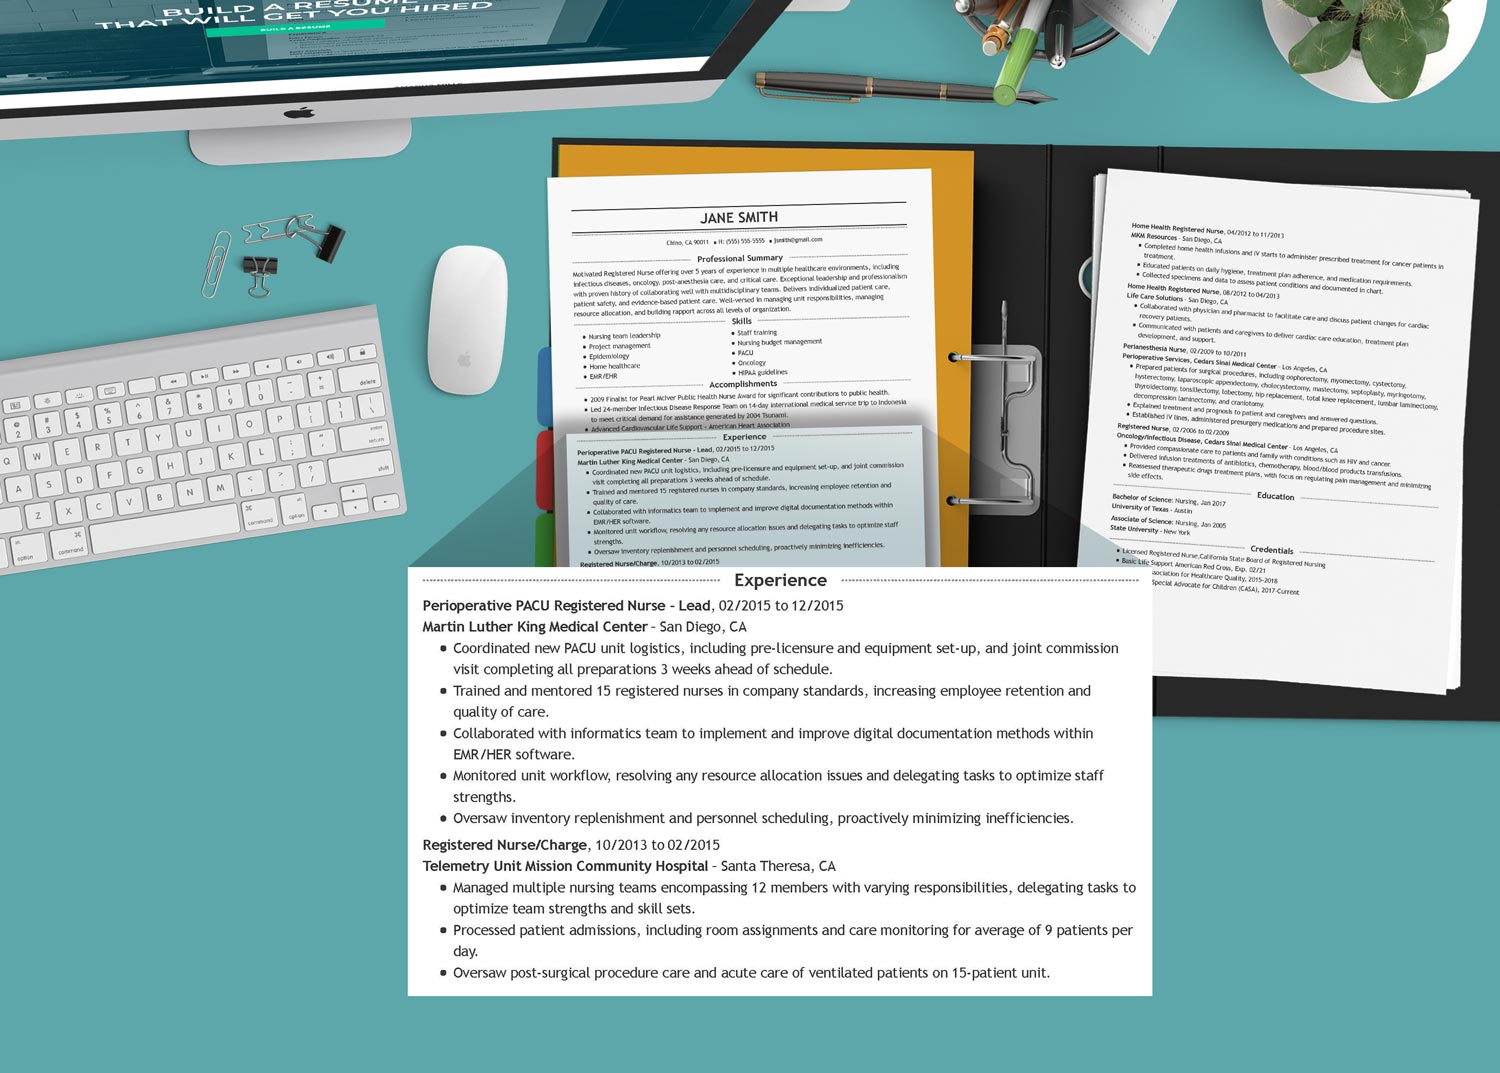 nurse resume writing: the experience section